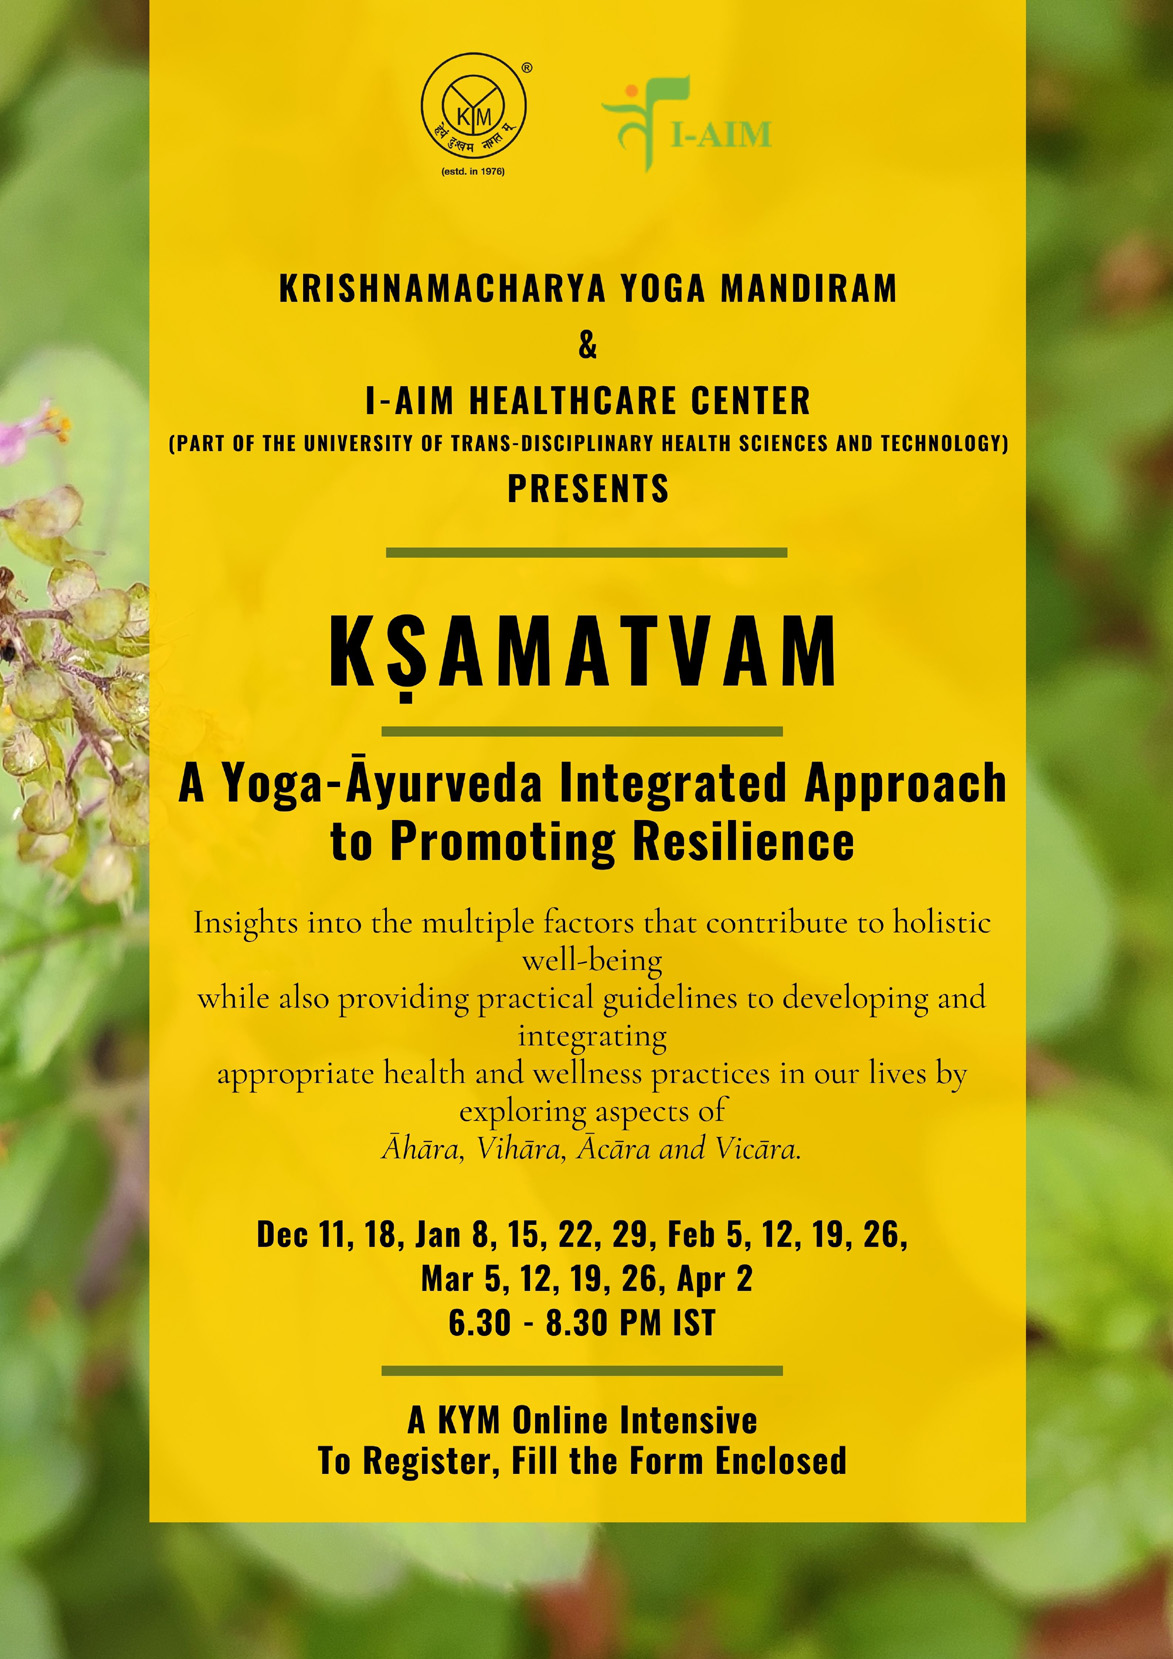 Kṣamatvam | A Yoga- Āyurveda Integrated Approach to Promoting Resilience